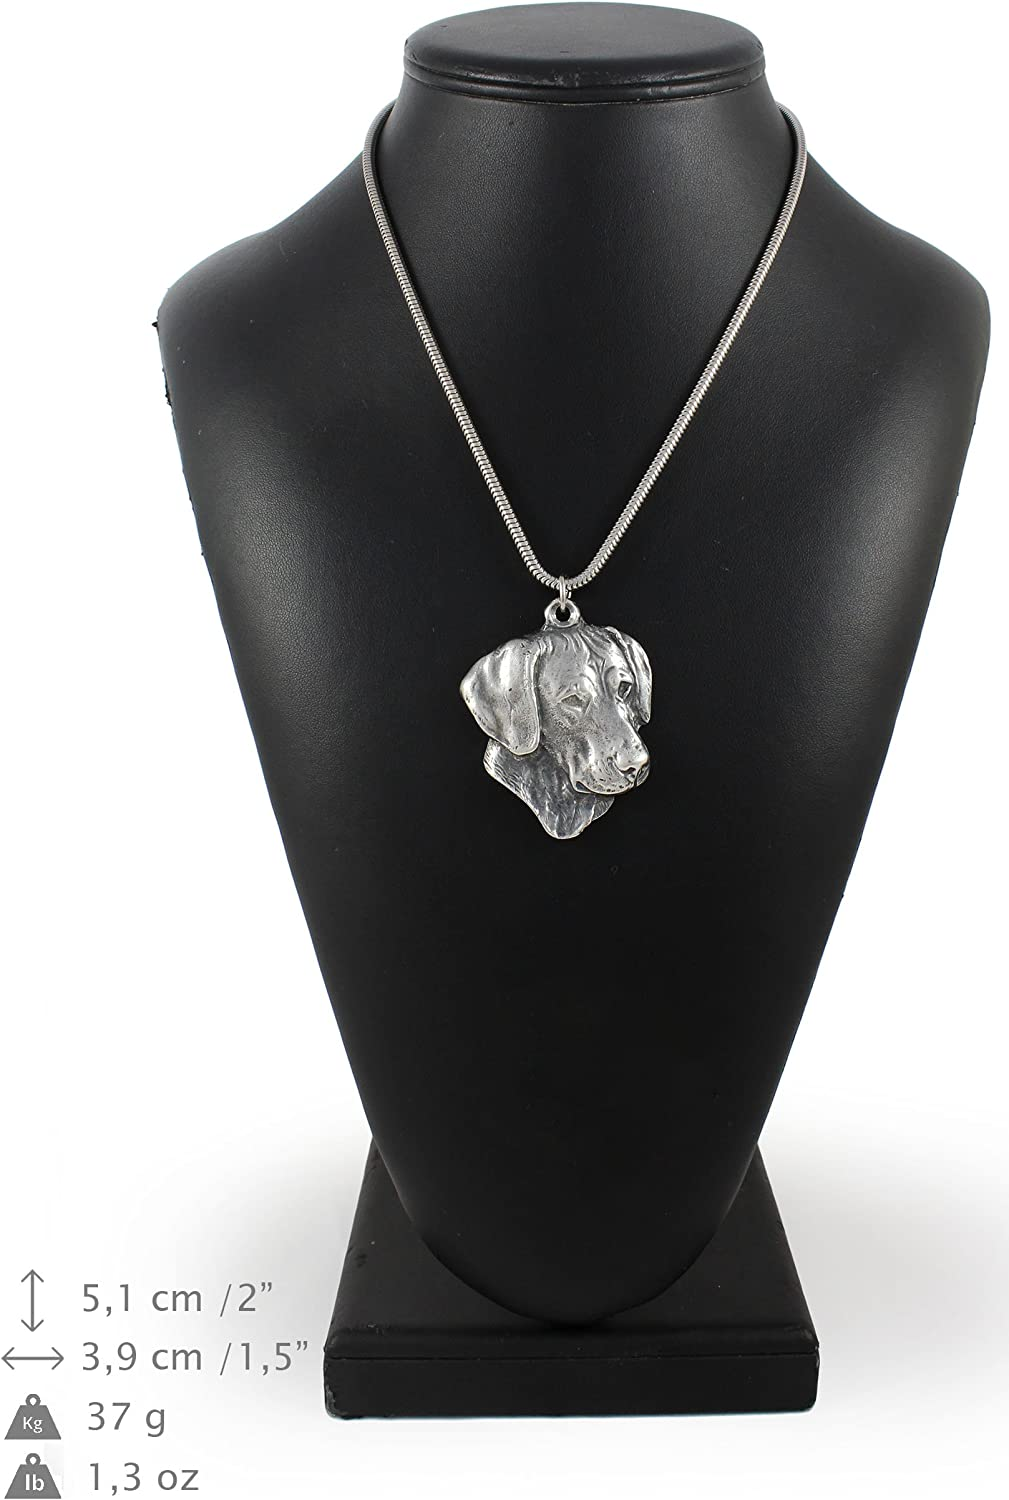 ArtDog Weimaraner Necklace Silver Plated Dog Pendant on a Snake Chain